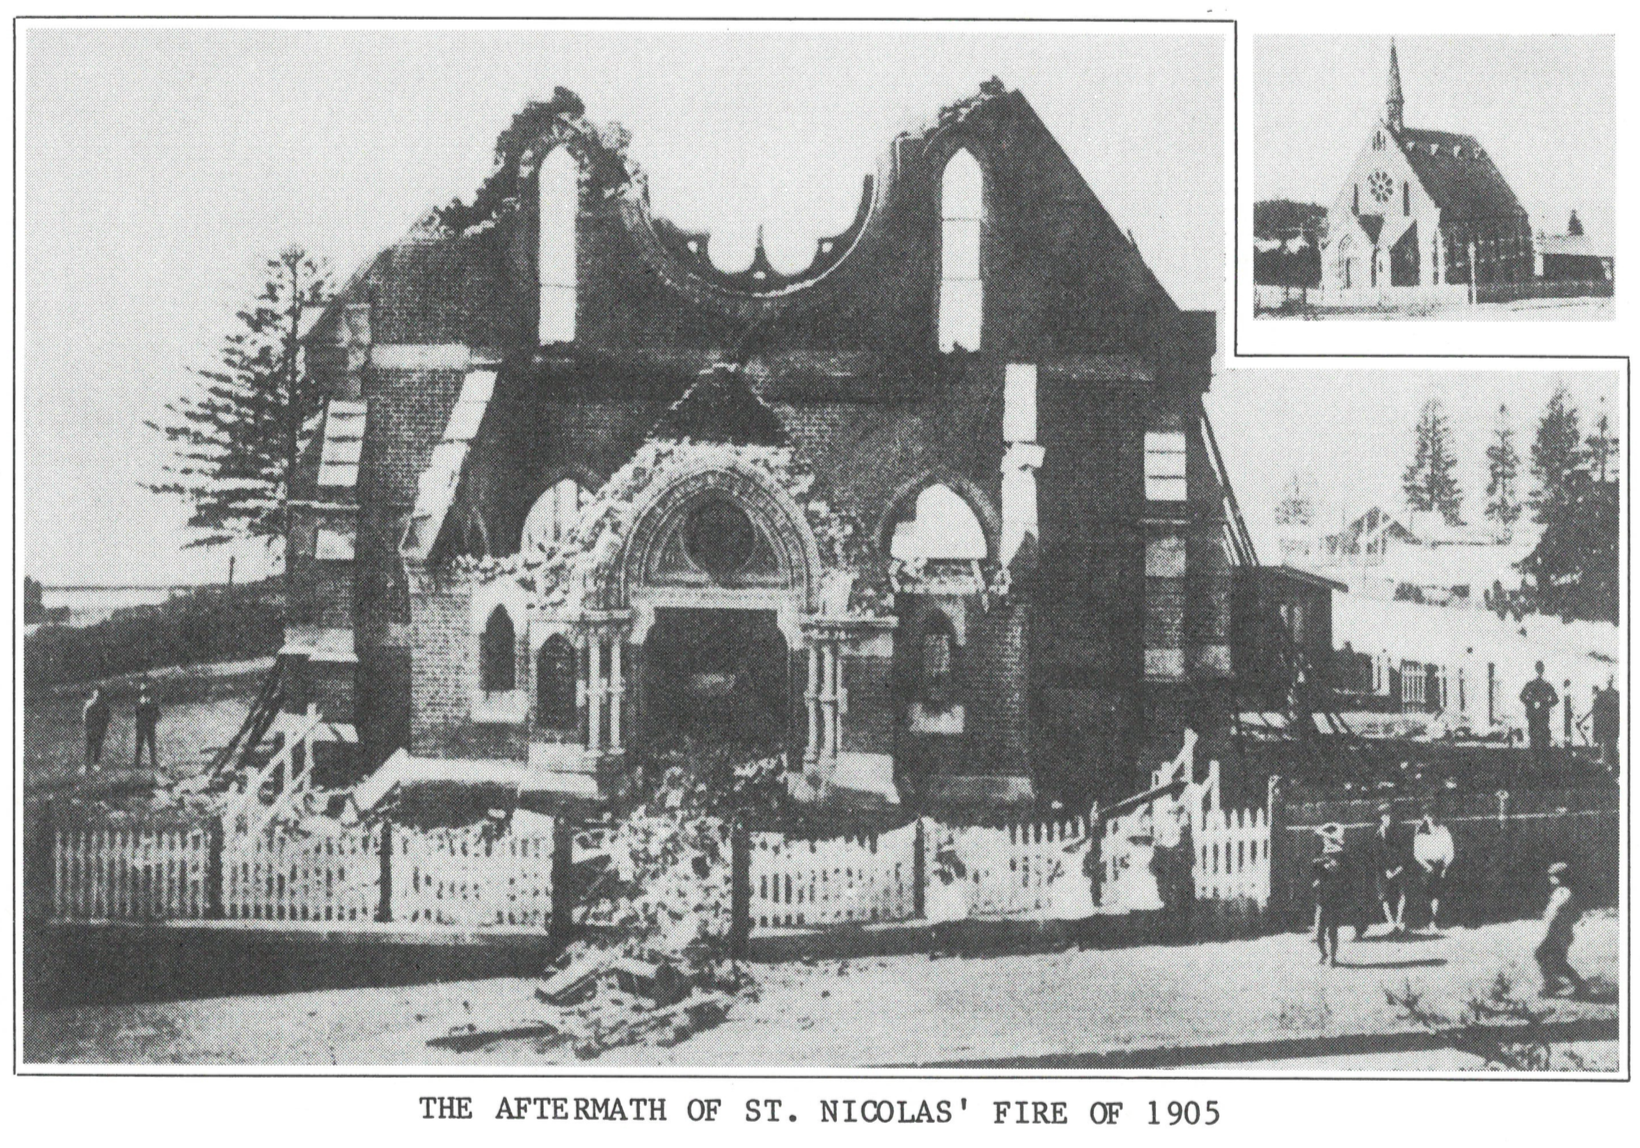 The church building after the 1905 fire (from Page 13 of the  Centenary History ). Click for full view.